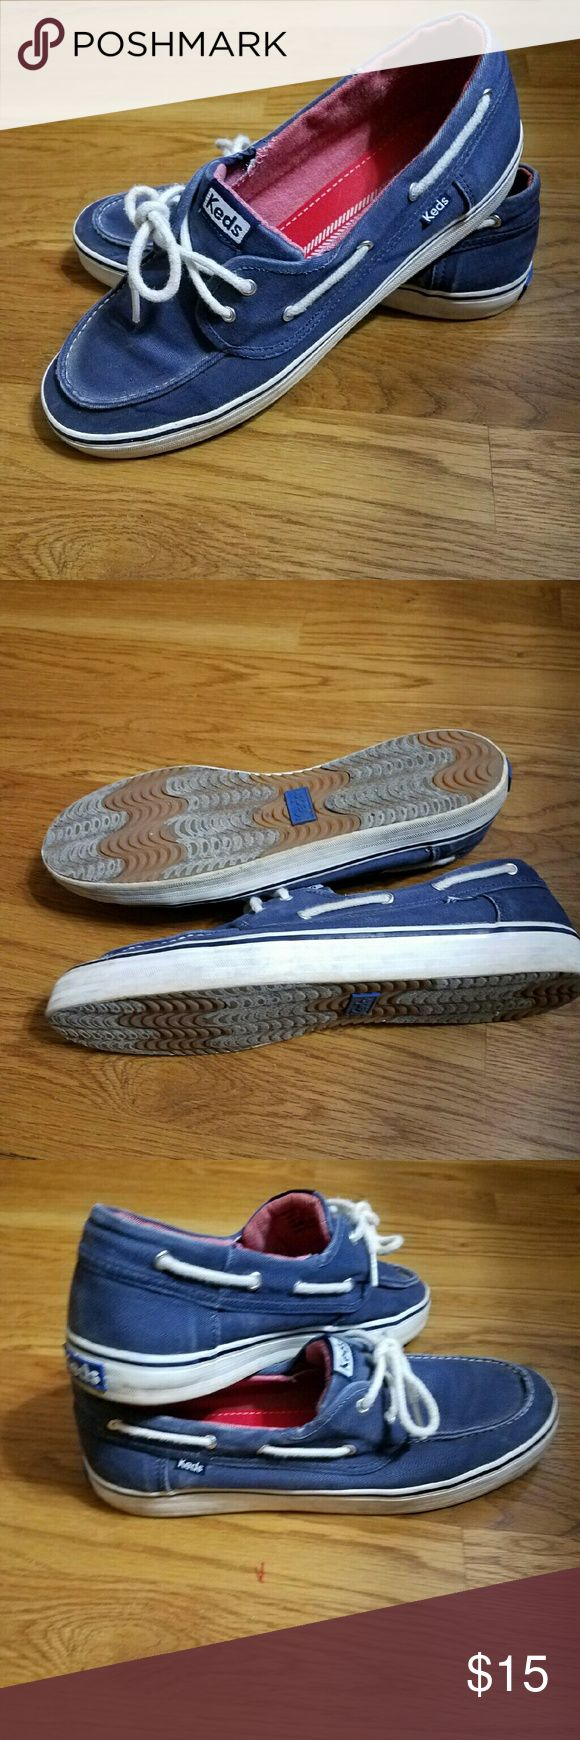 Keds Boat Shoes Keds Boat Shoes  Like new, worn very few times Size 11 but run big that's why I didn't wear them Keds Shoes Flats & Loafers